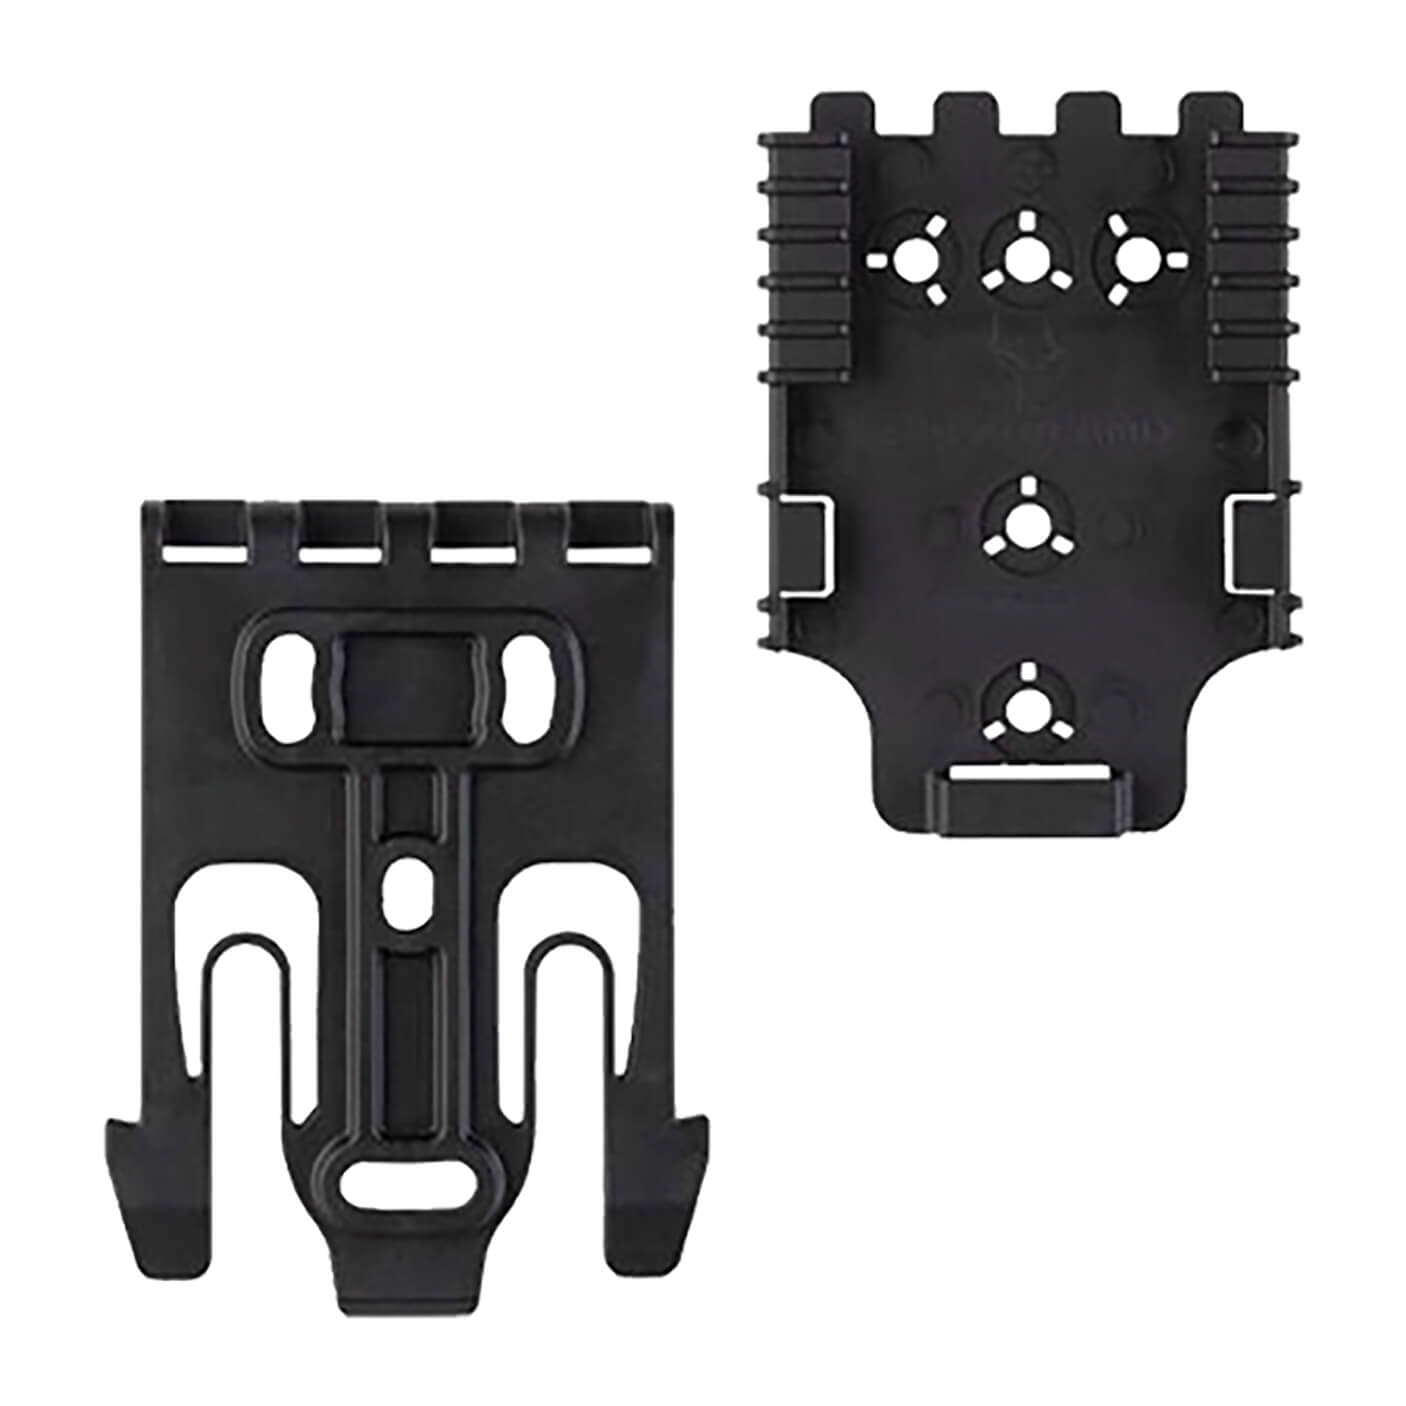 Picture for category Holster Parts & Accessories